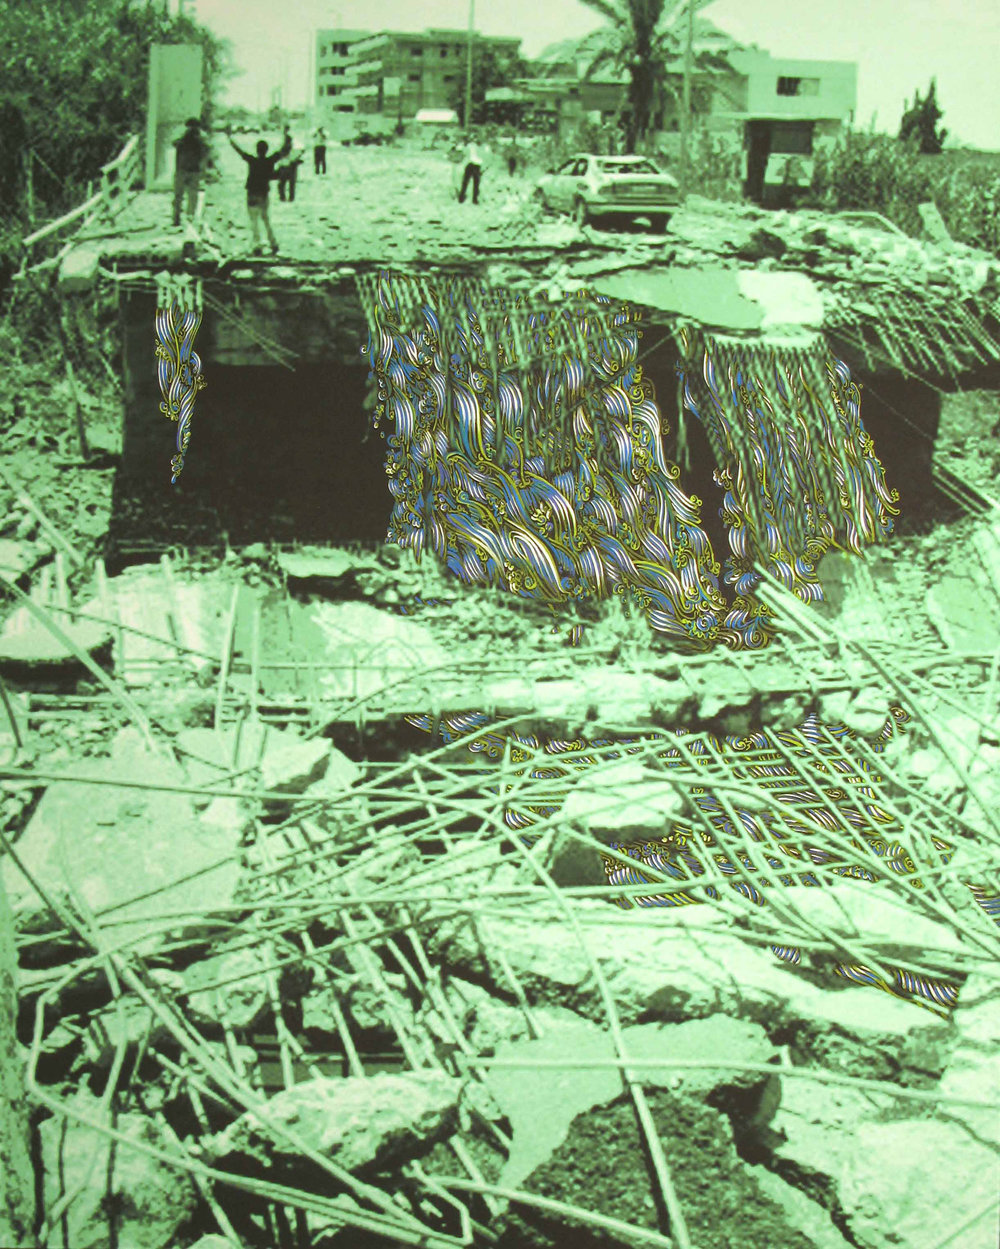 REFRASH (WATERFALL), 2007